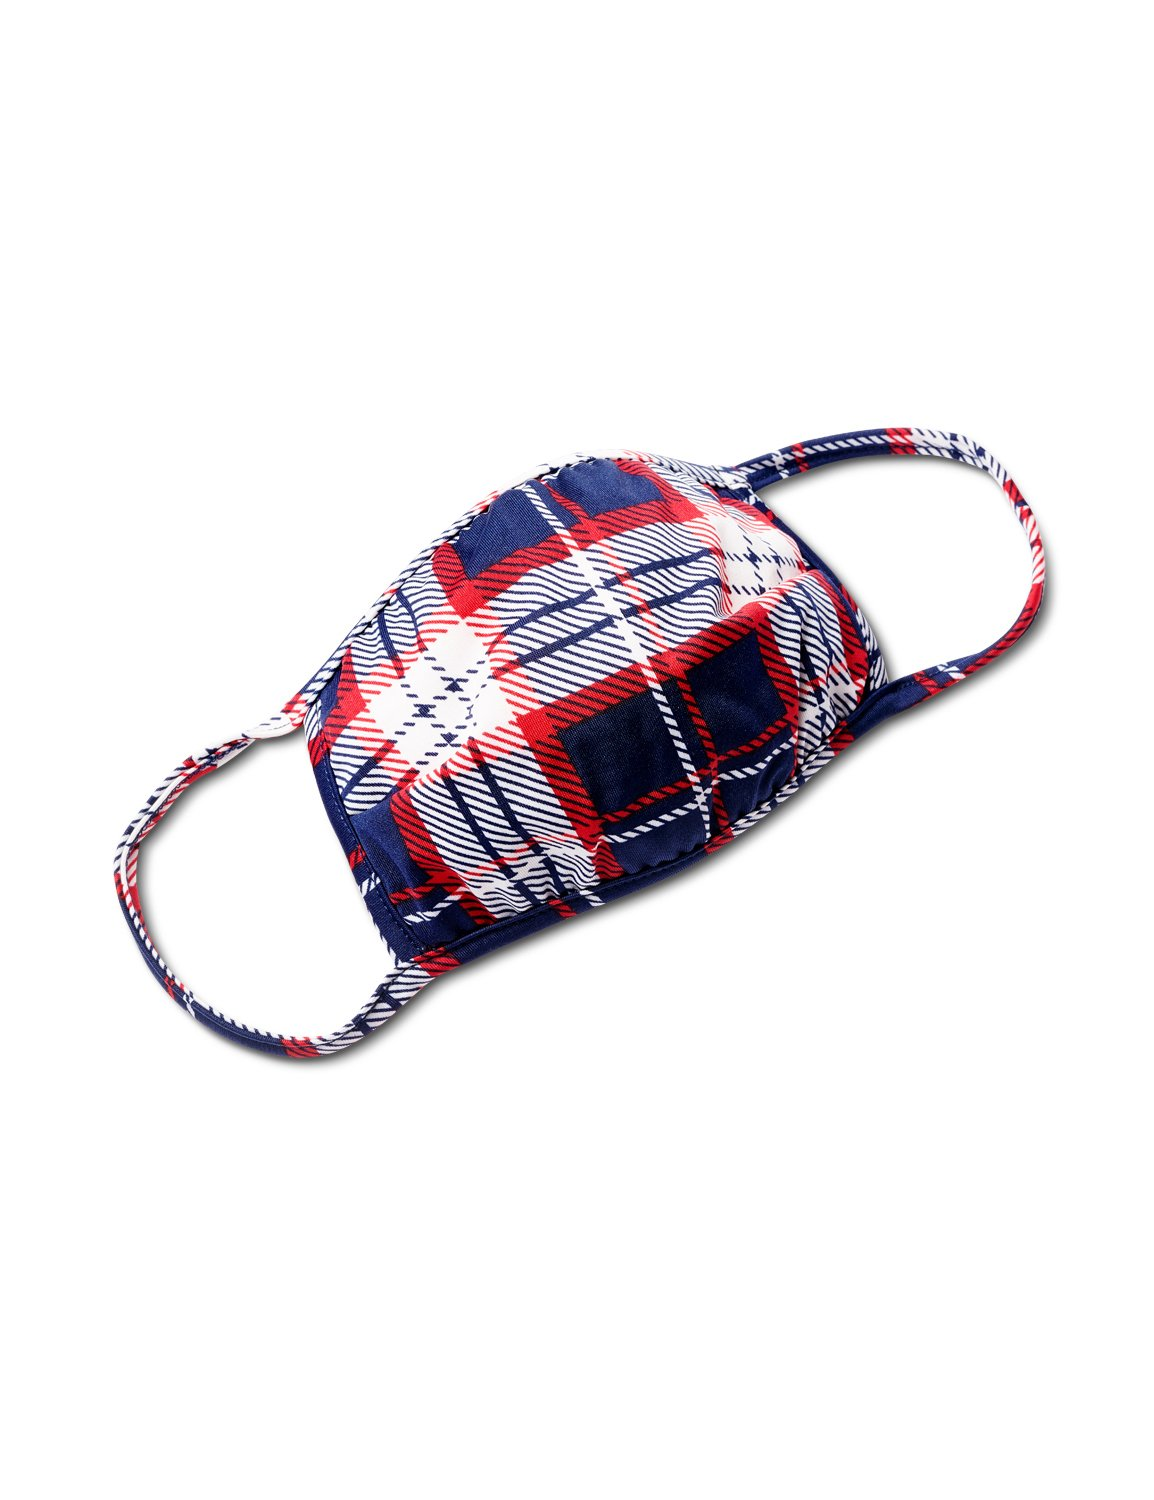 Plaid Fashion Mask -Navy/Red - Front